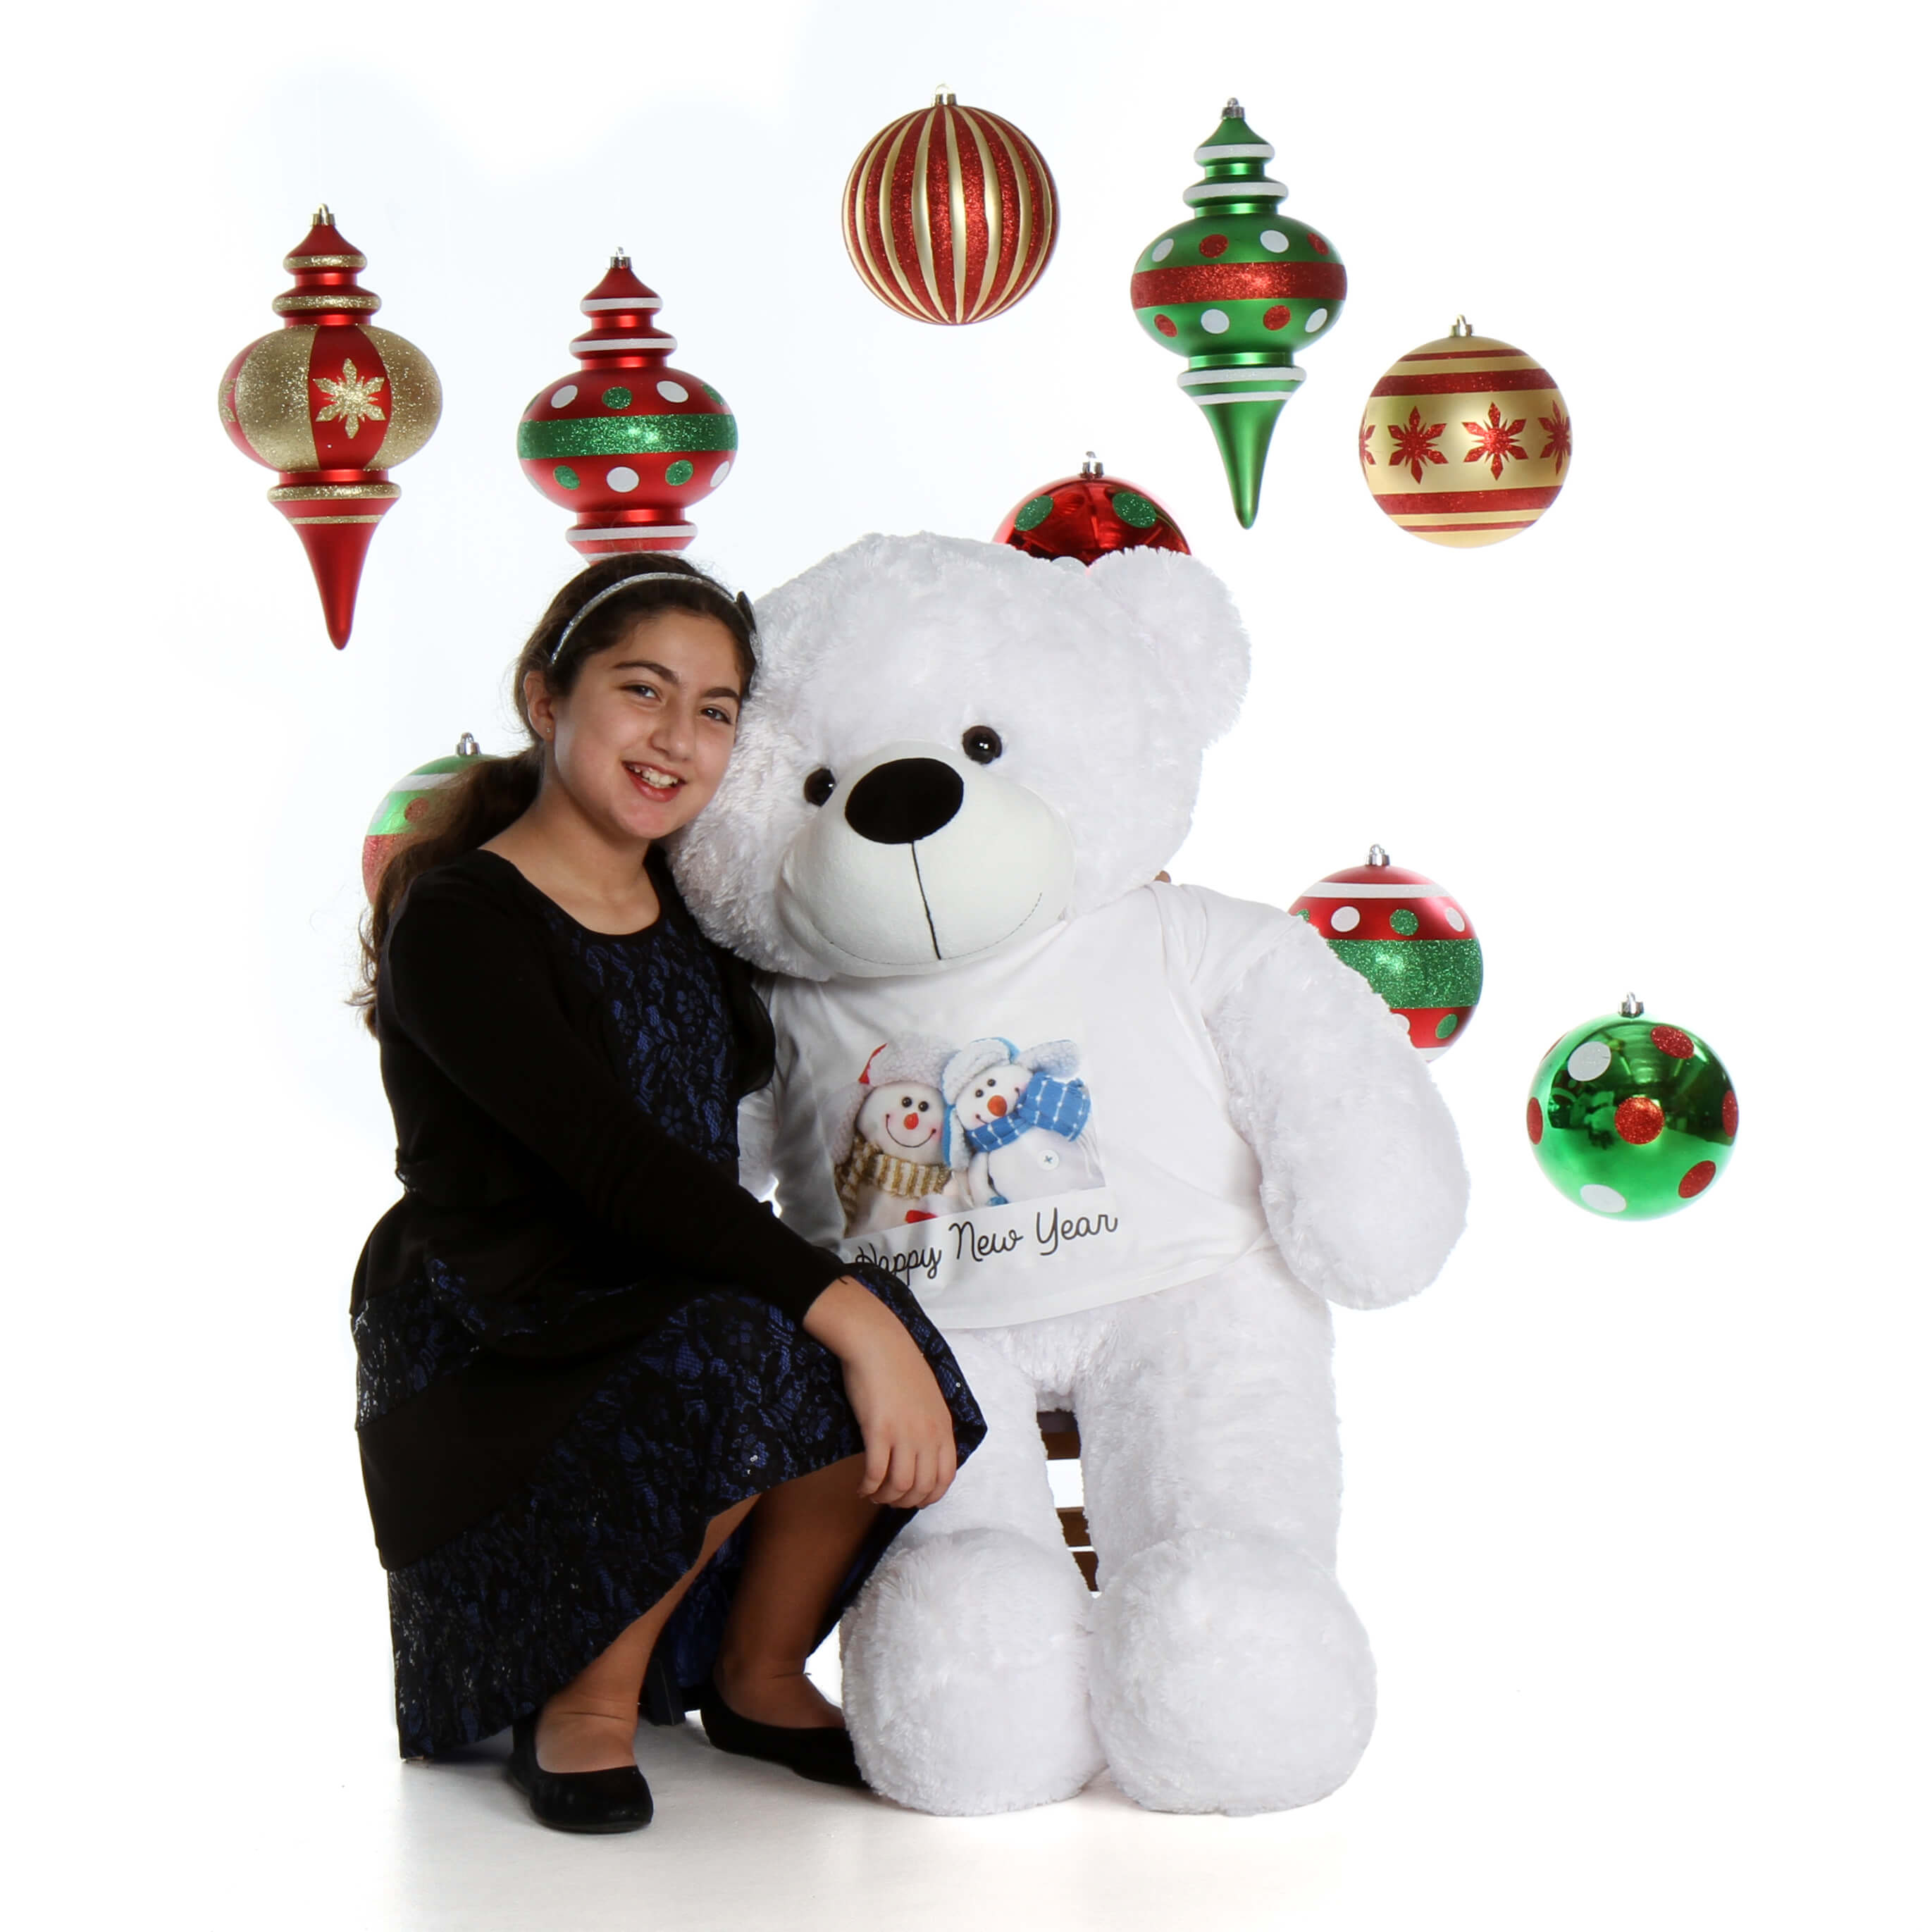 48in-white-teddy-bear-coco-cuddles-happy-new-year-full-standing1.jpg